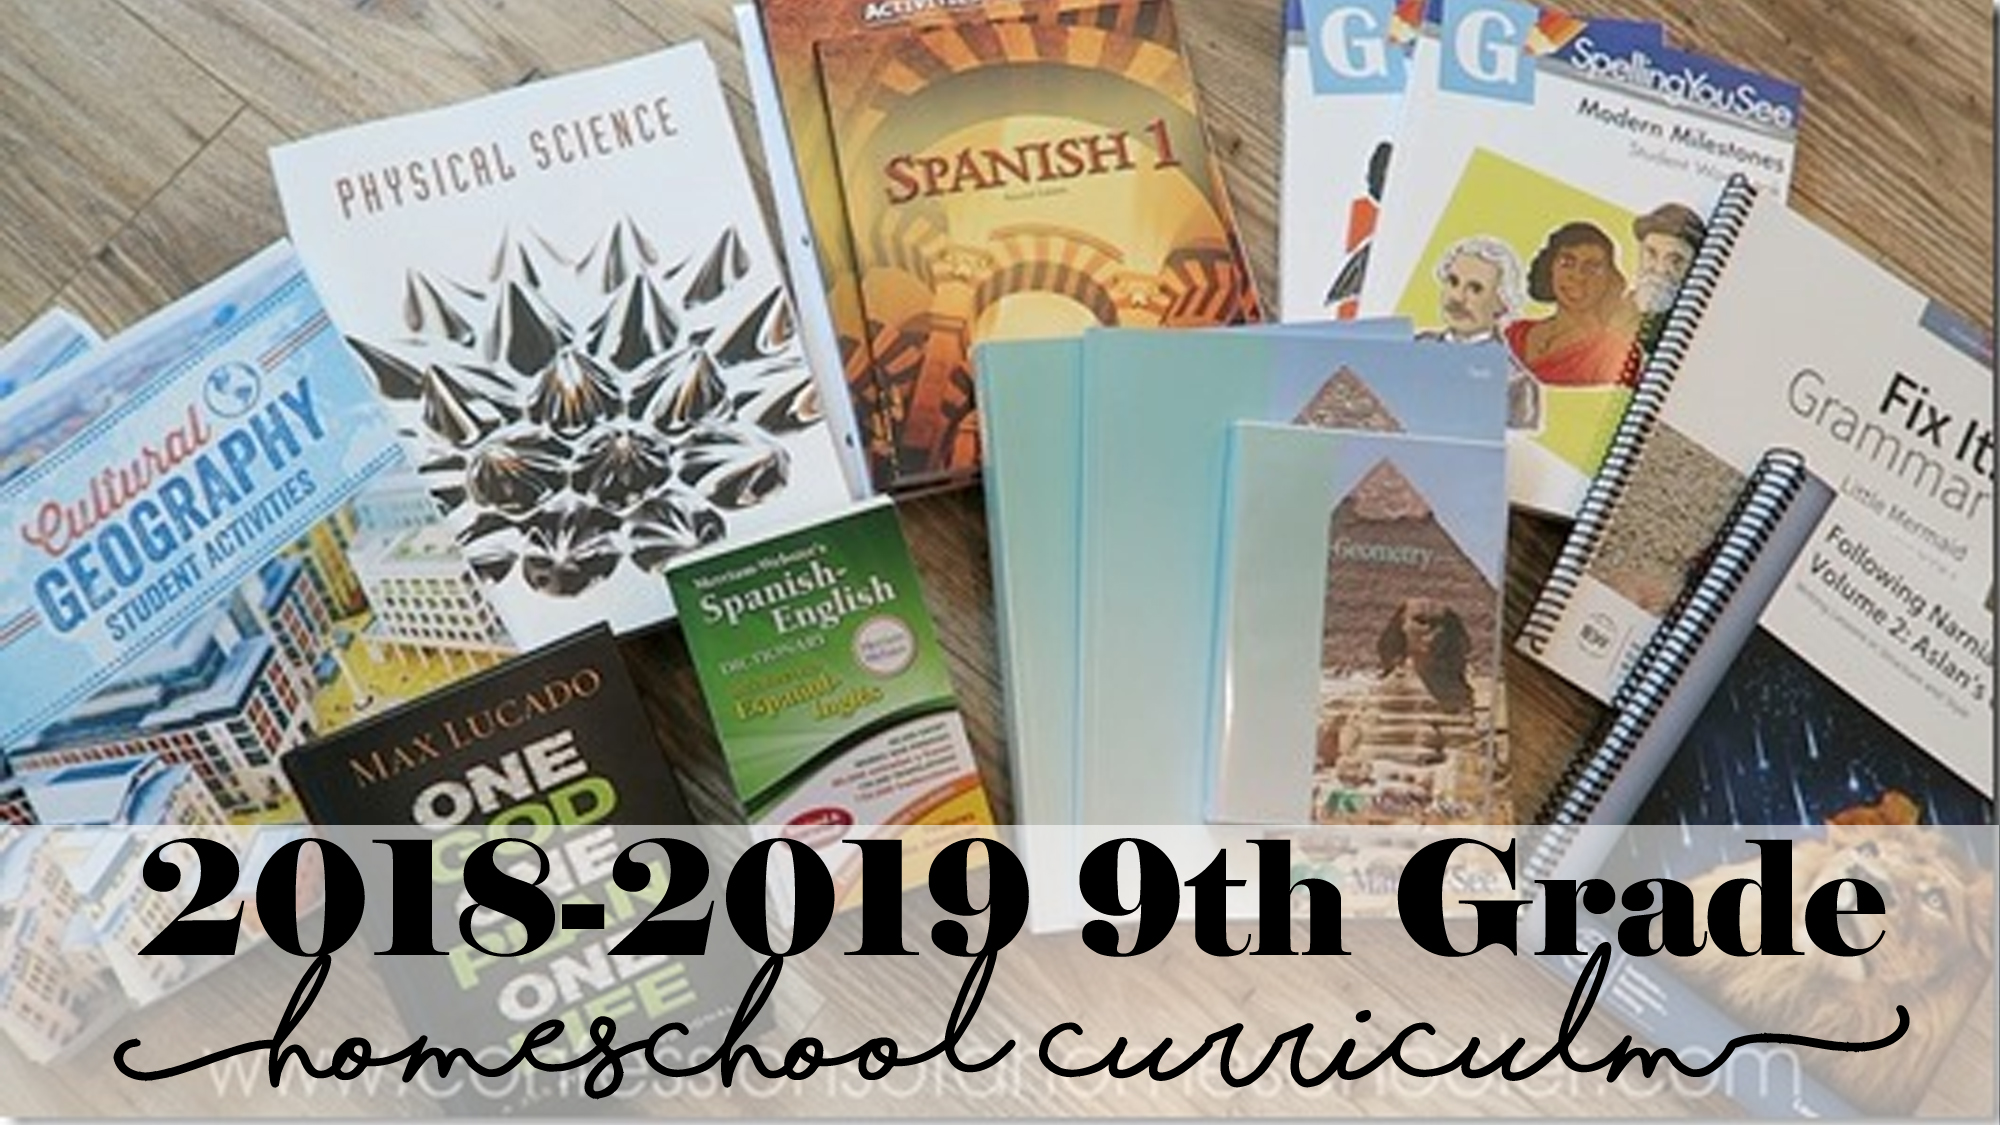 2018-2019 9th Grade Homeschool Curriculum